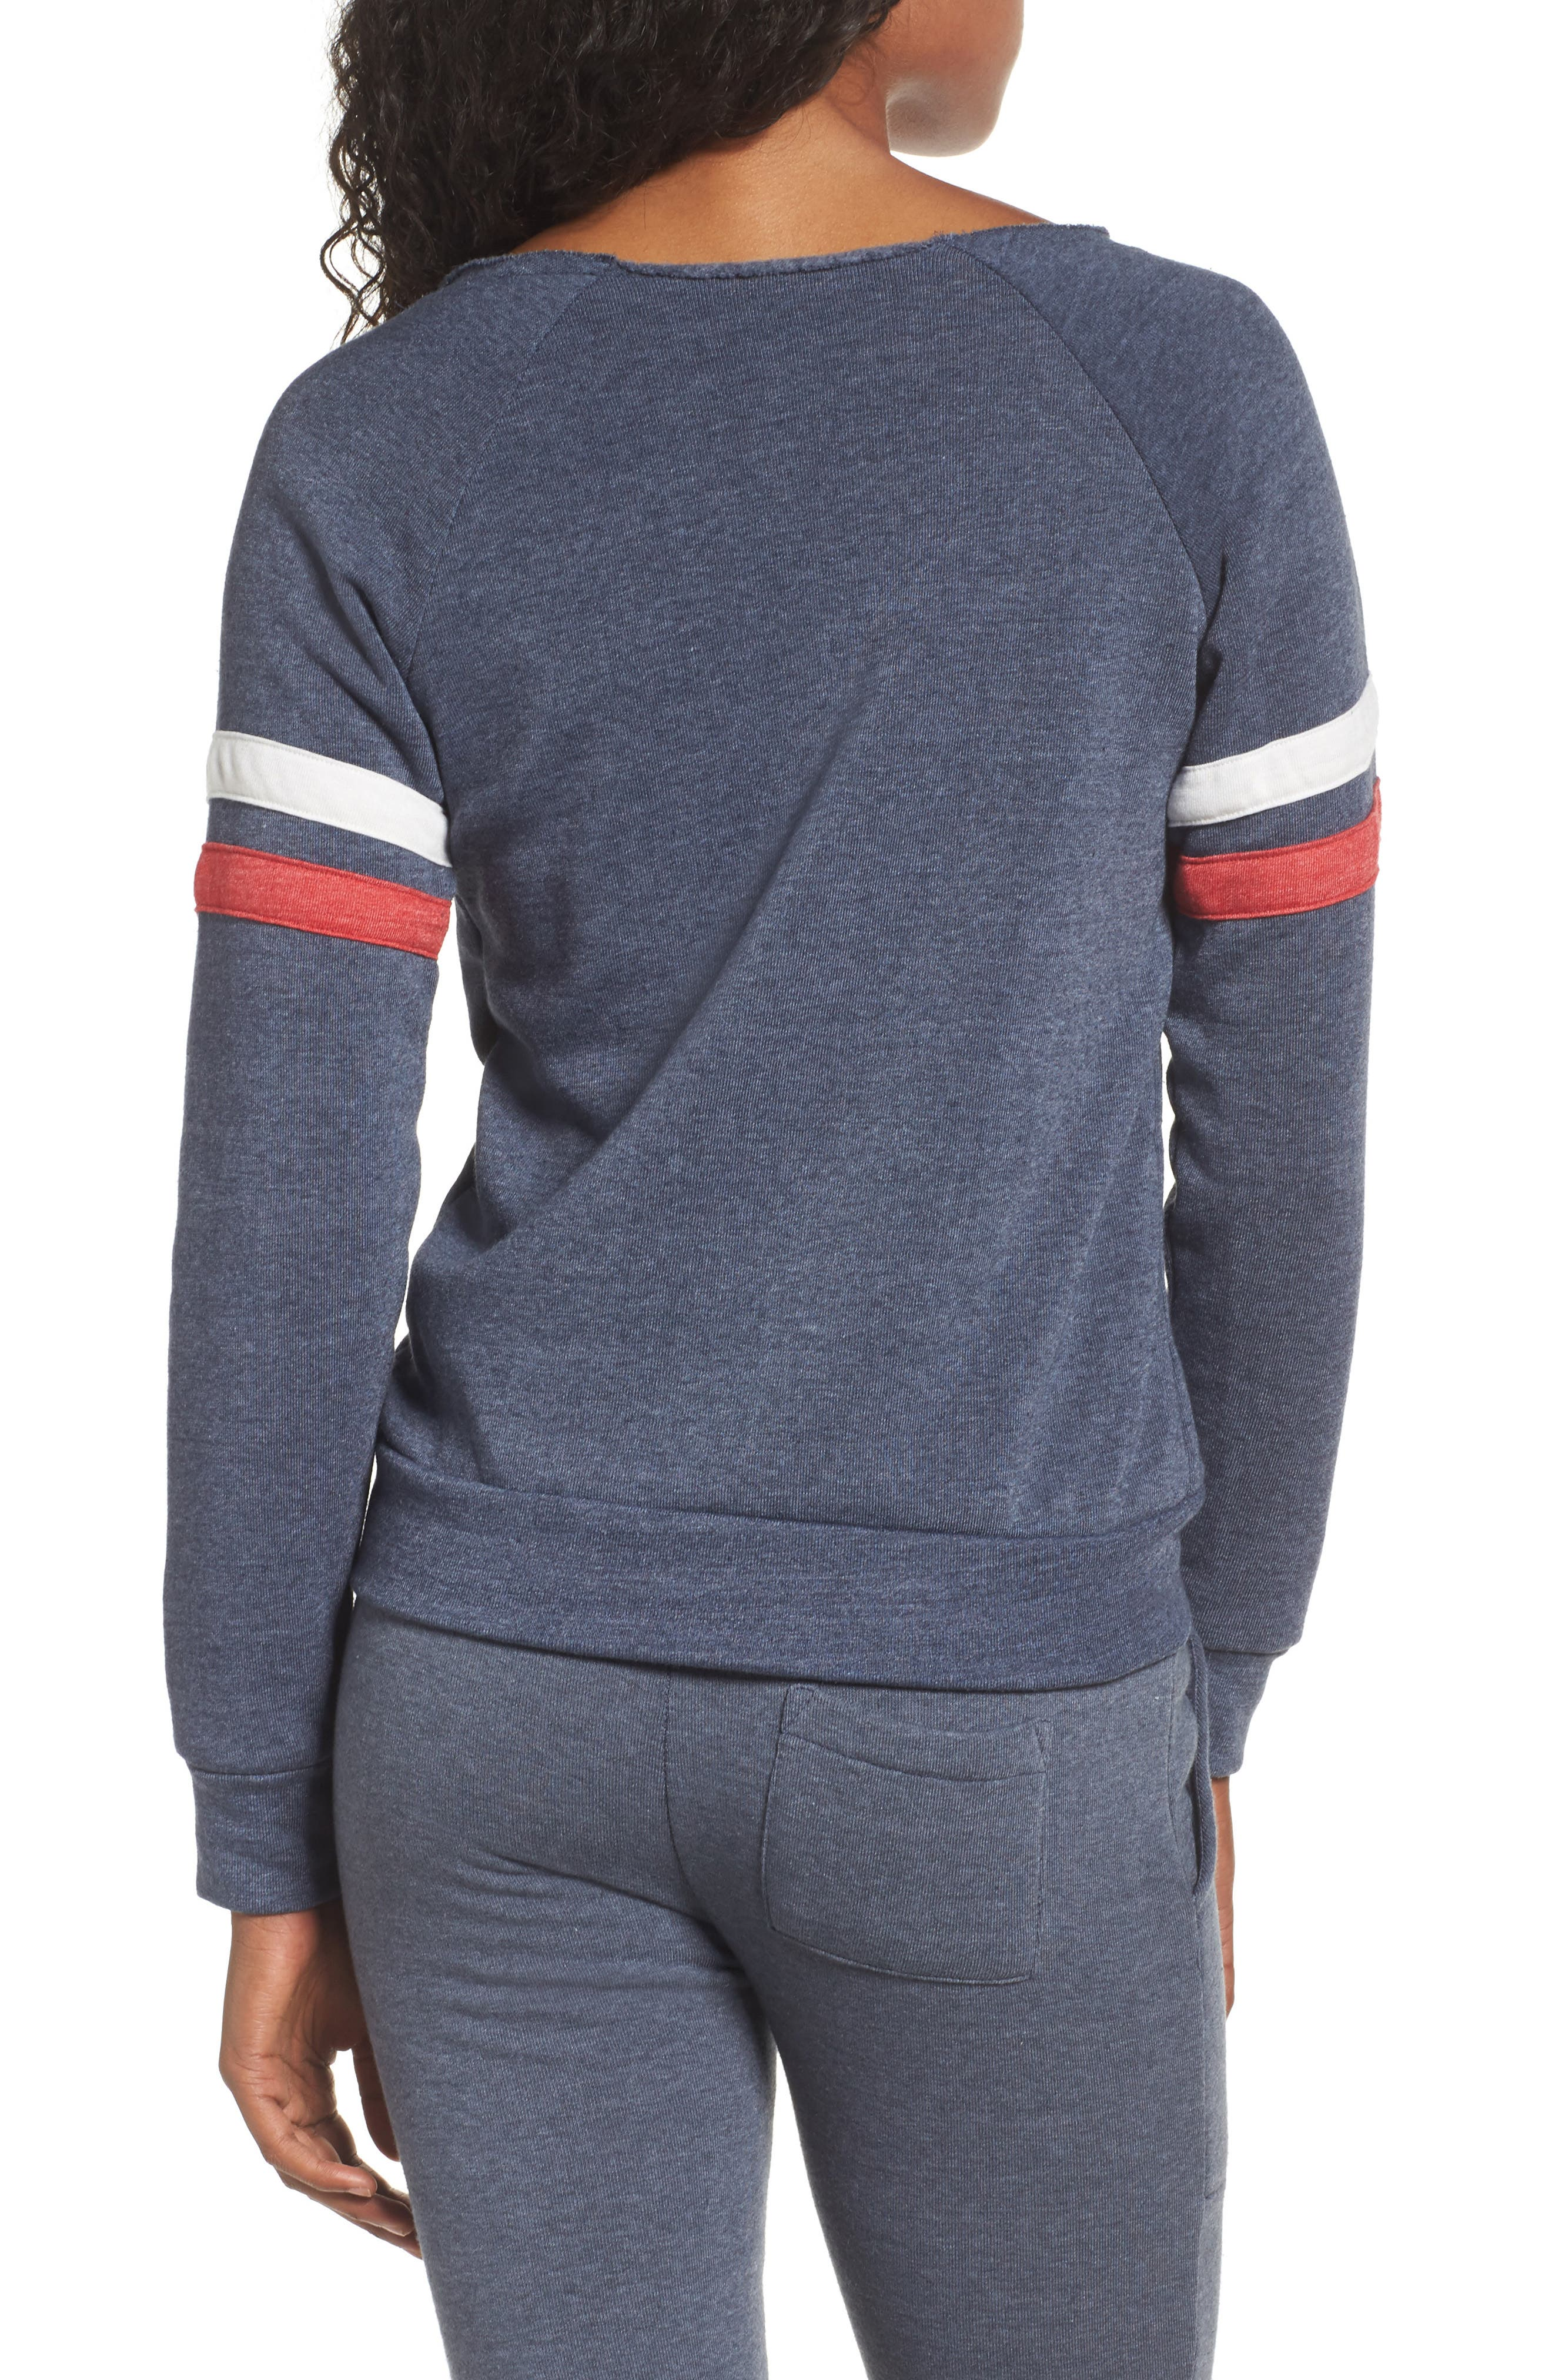 Maniac Sport Pullover,                             Alternate thumbnail 2, color,                             Eco True Navy